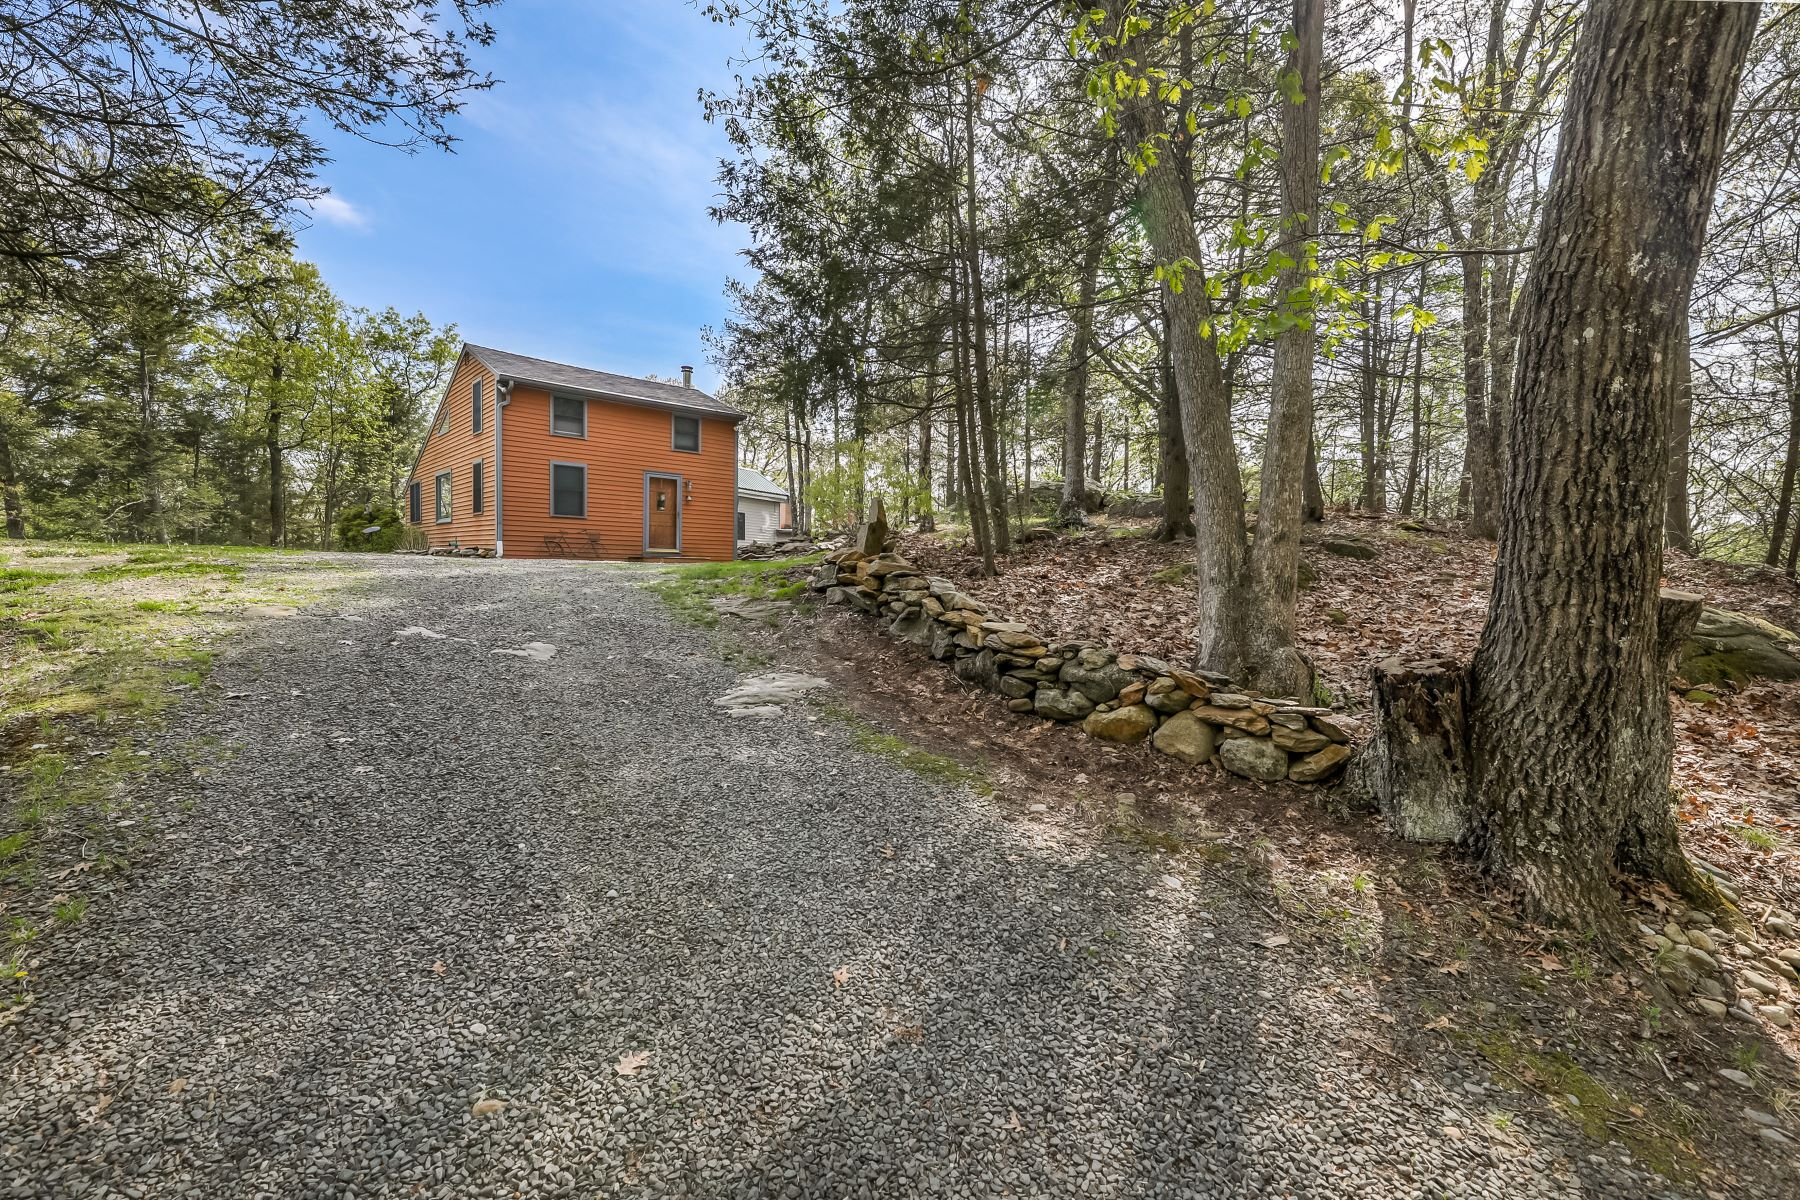 Single Family Home for Sale at A Home Like No Other! 133 Pisgah Road Oxford, Connecticut 06478 United States